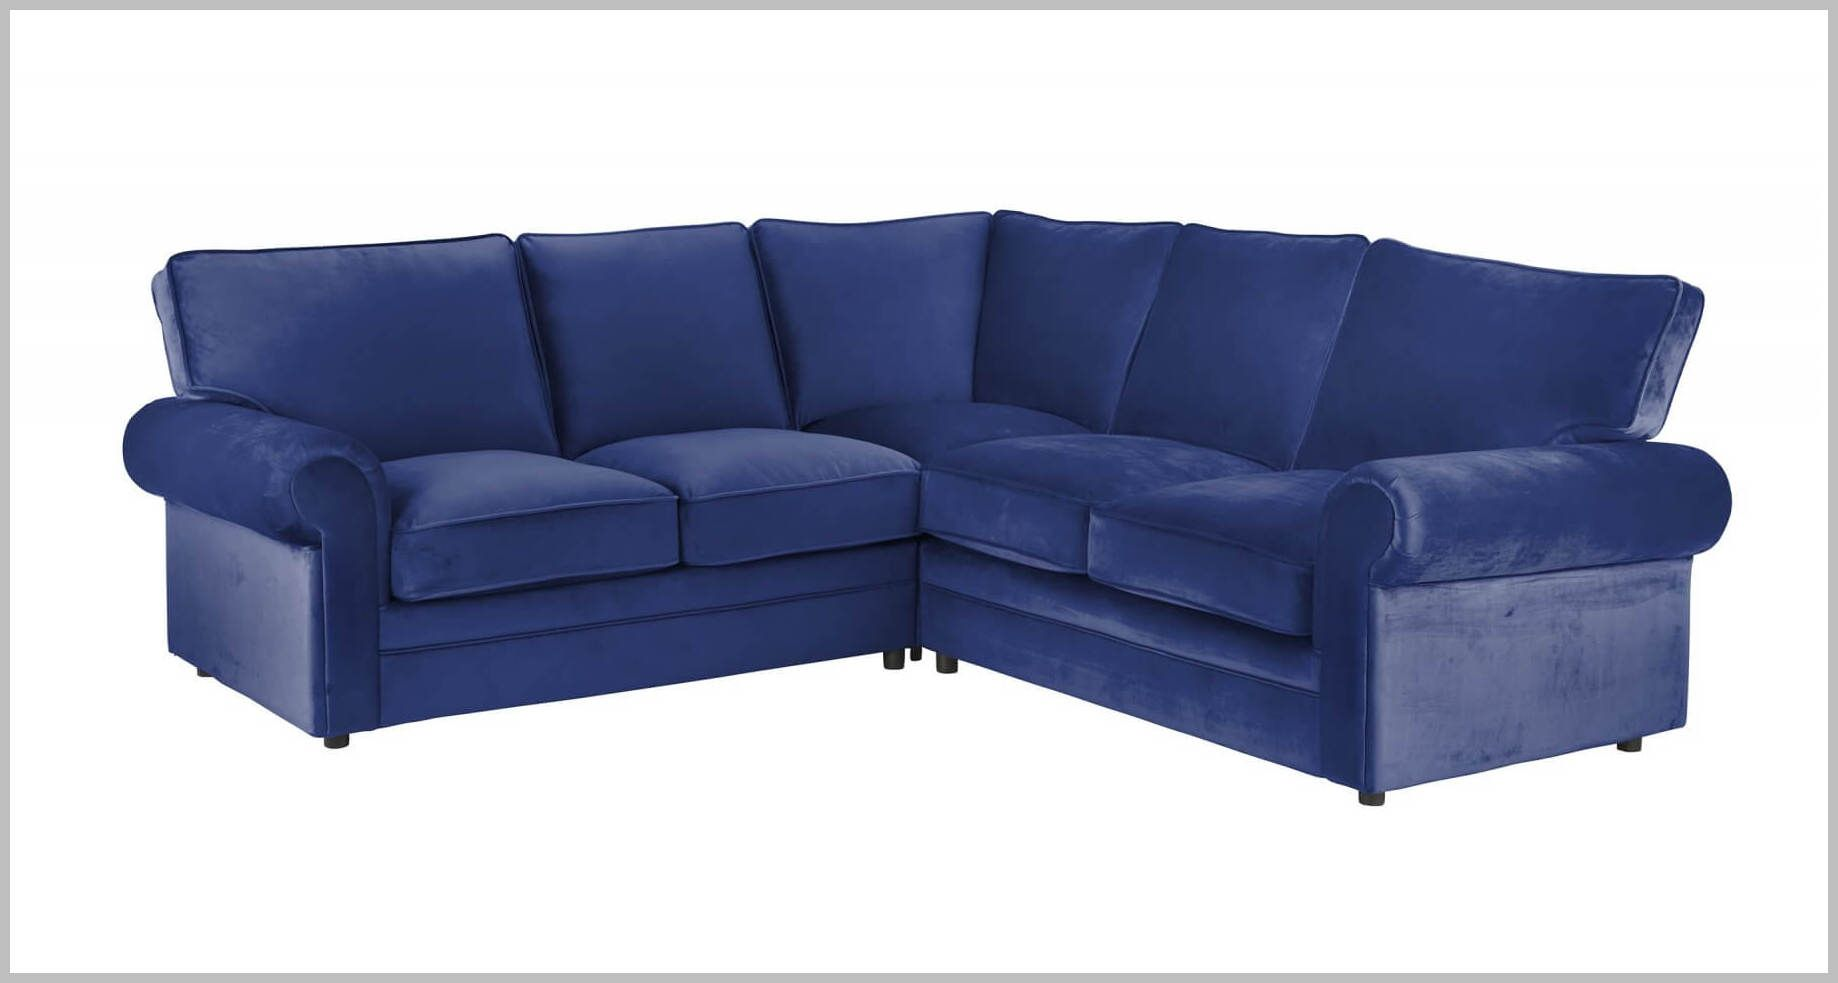 Navy Blue Corner Couch In 2020 Contemporary Home Office Furniture Blue Couch Living Room Blue Chesterfield Sofa